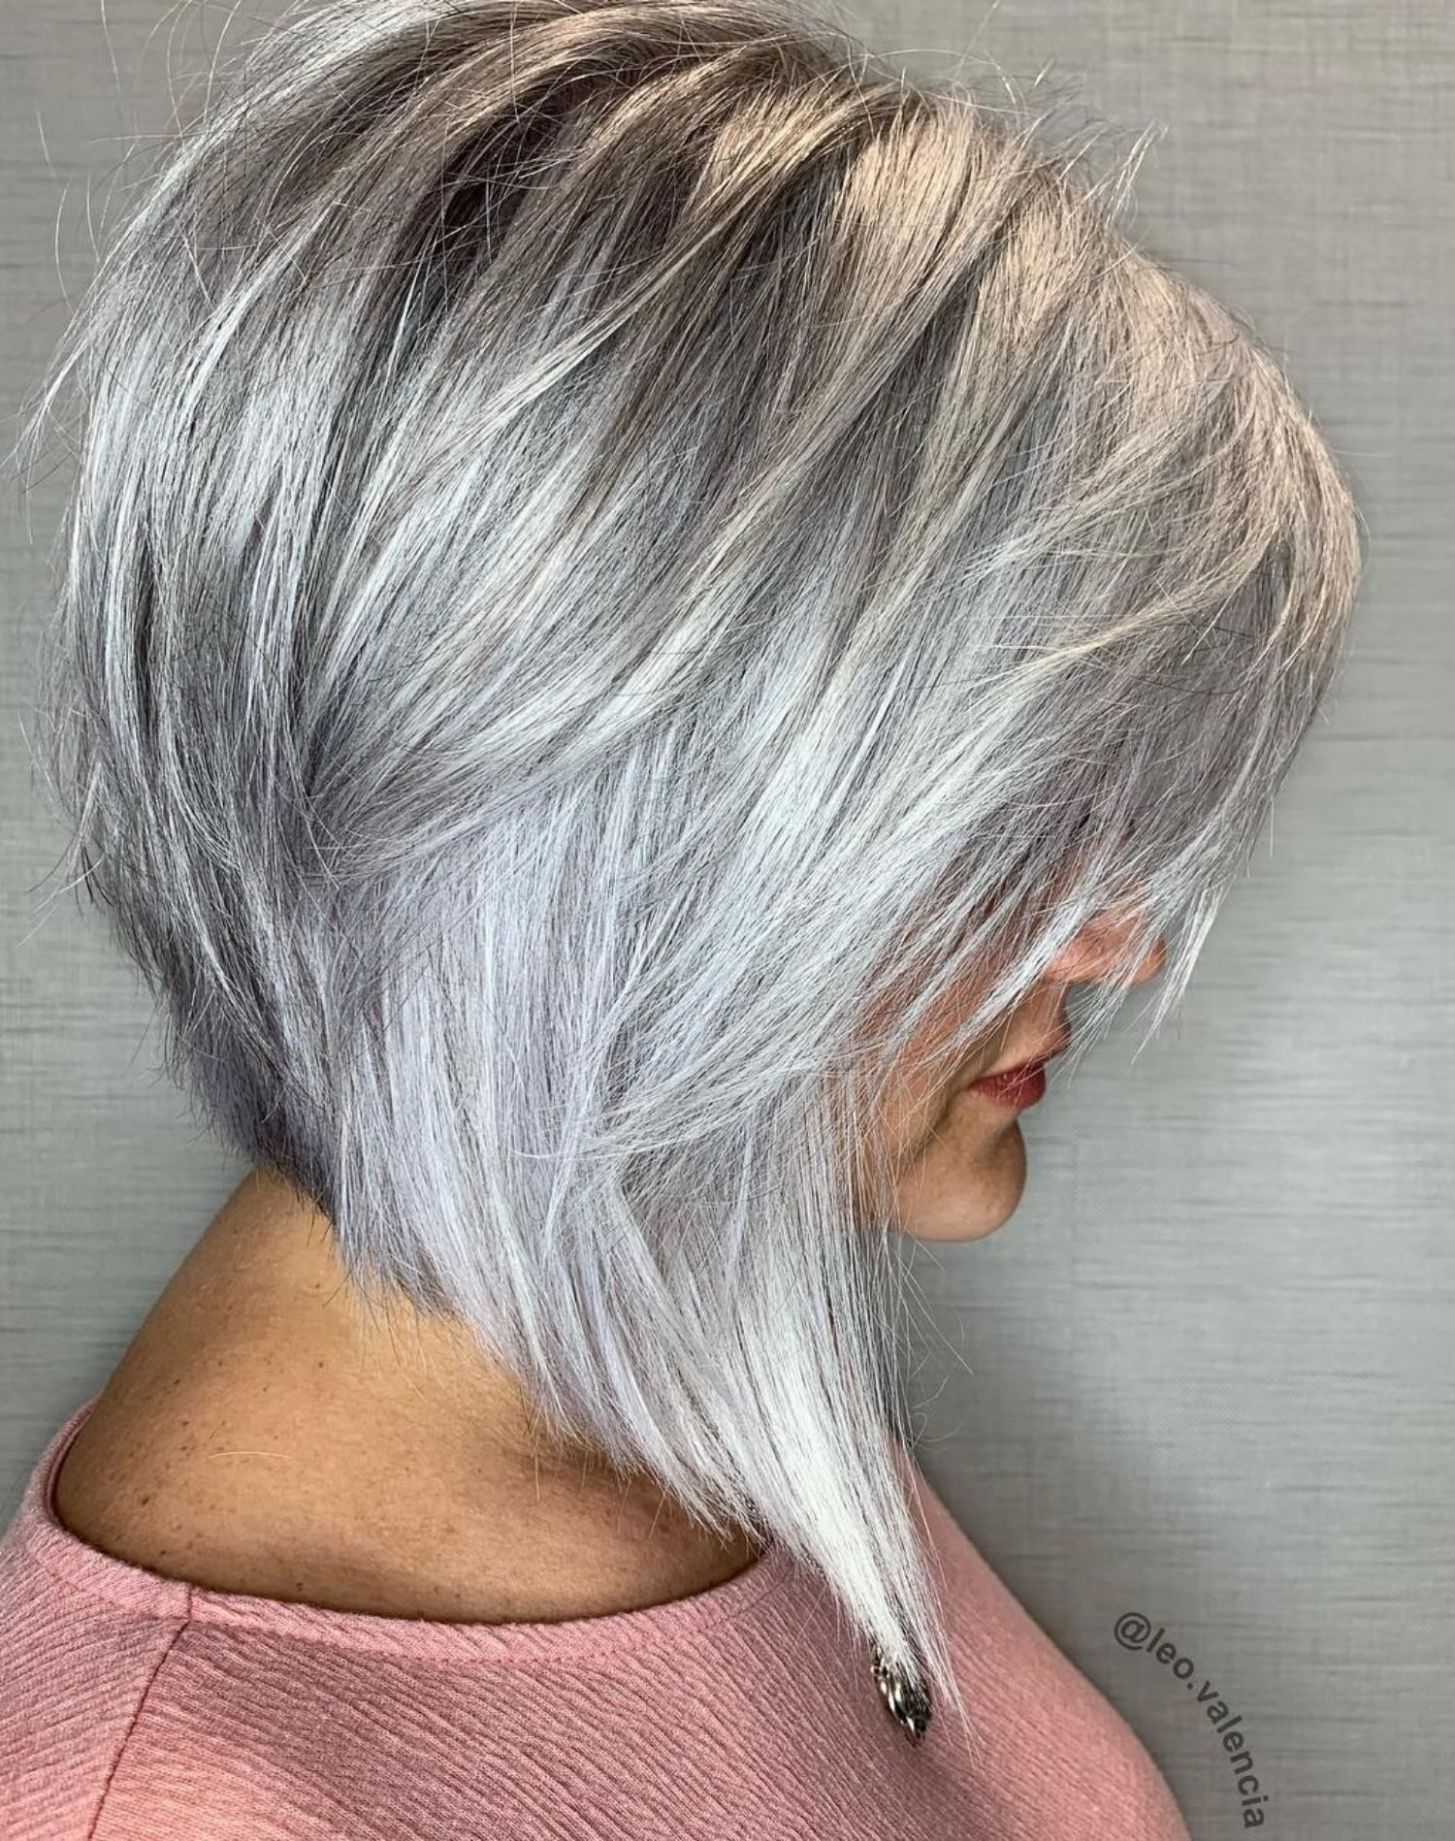 50++ Long bob hairstyles for over 50 info